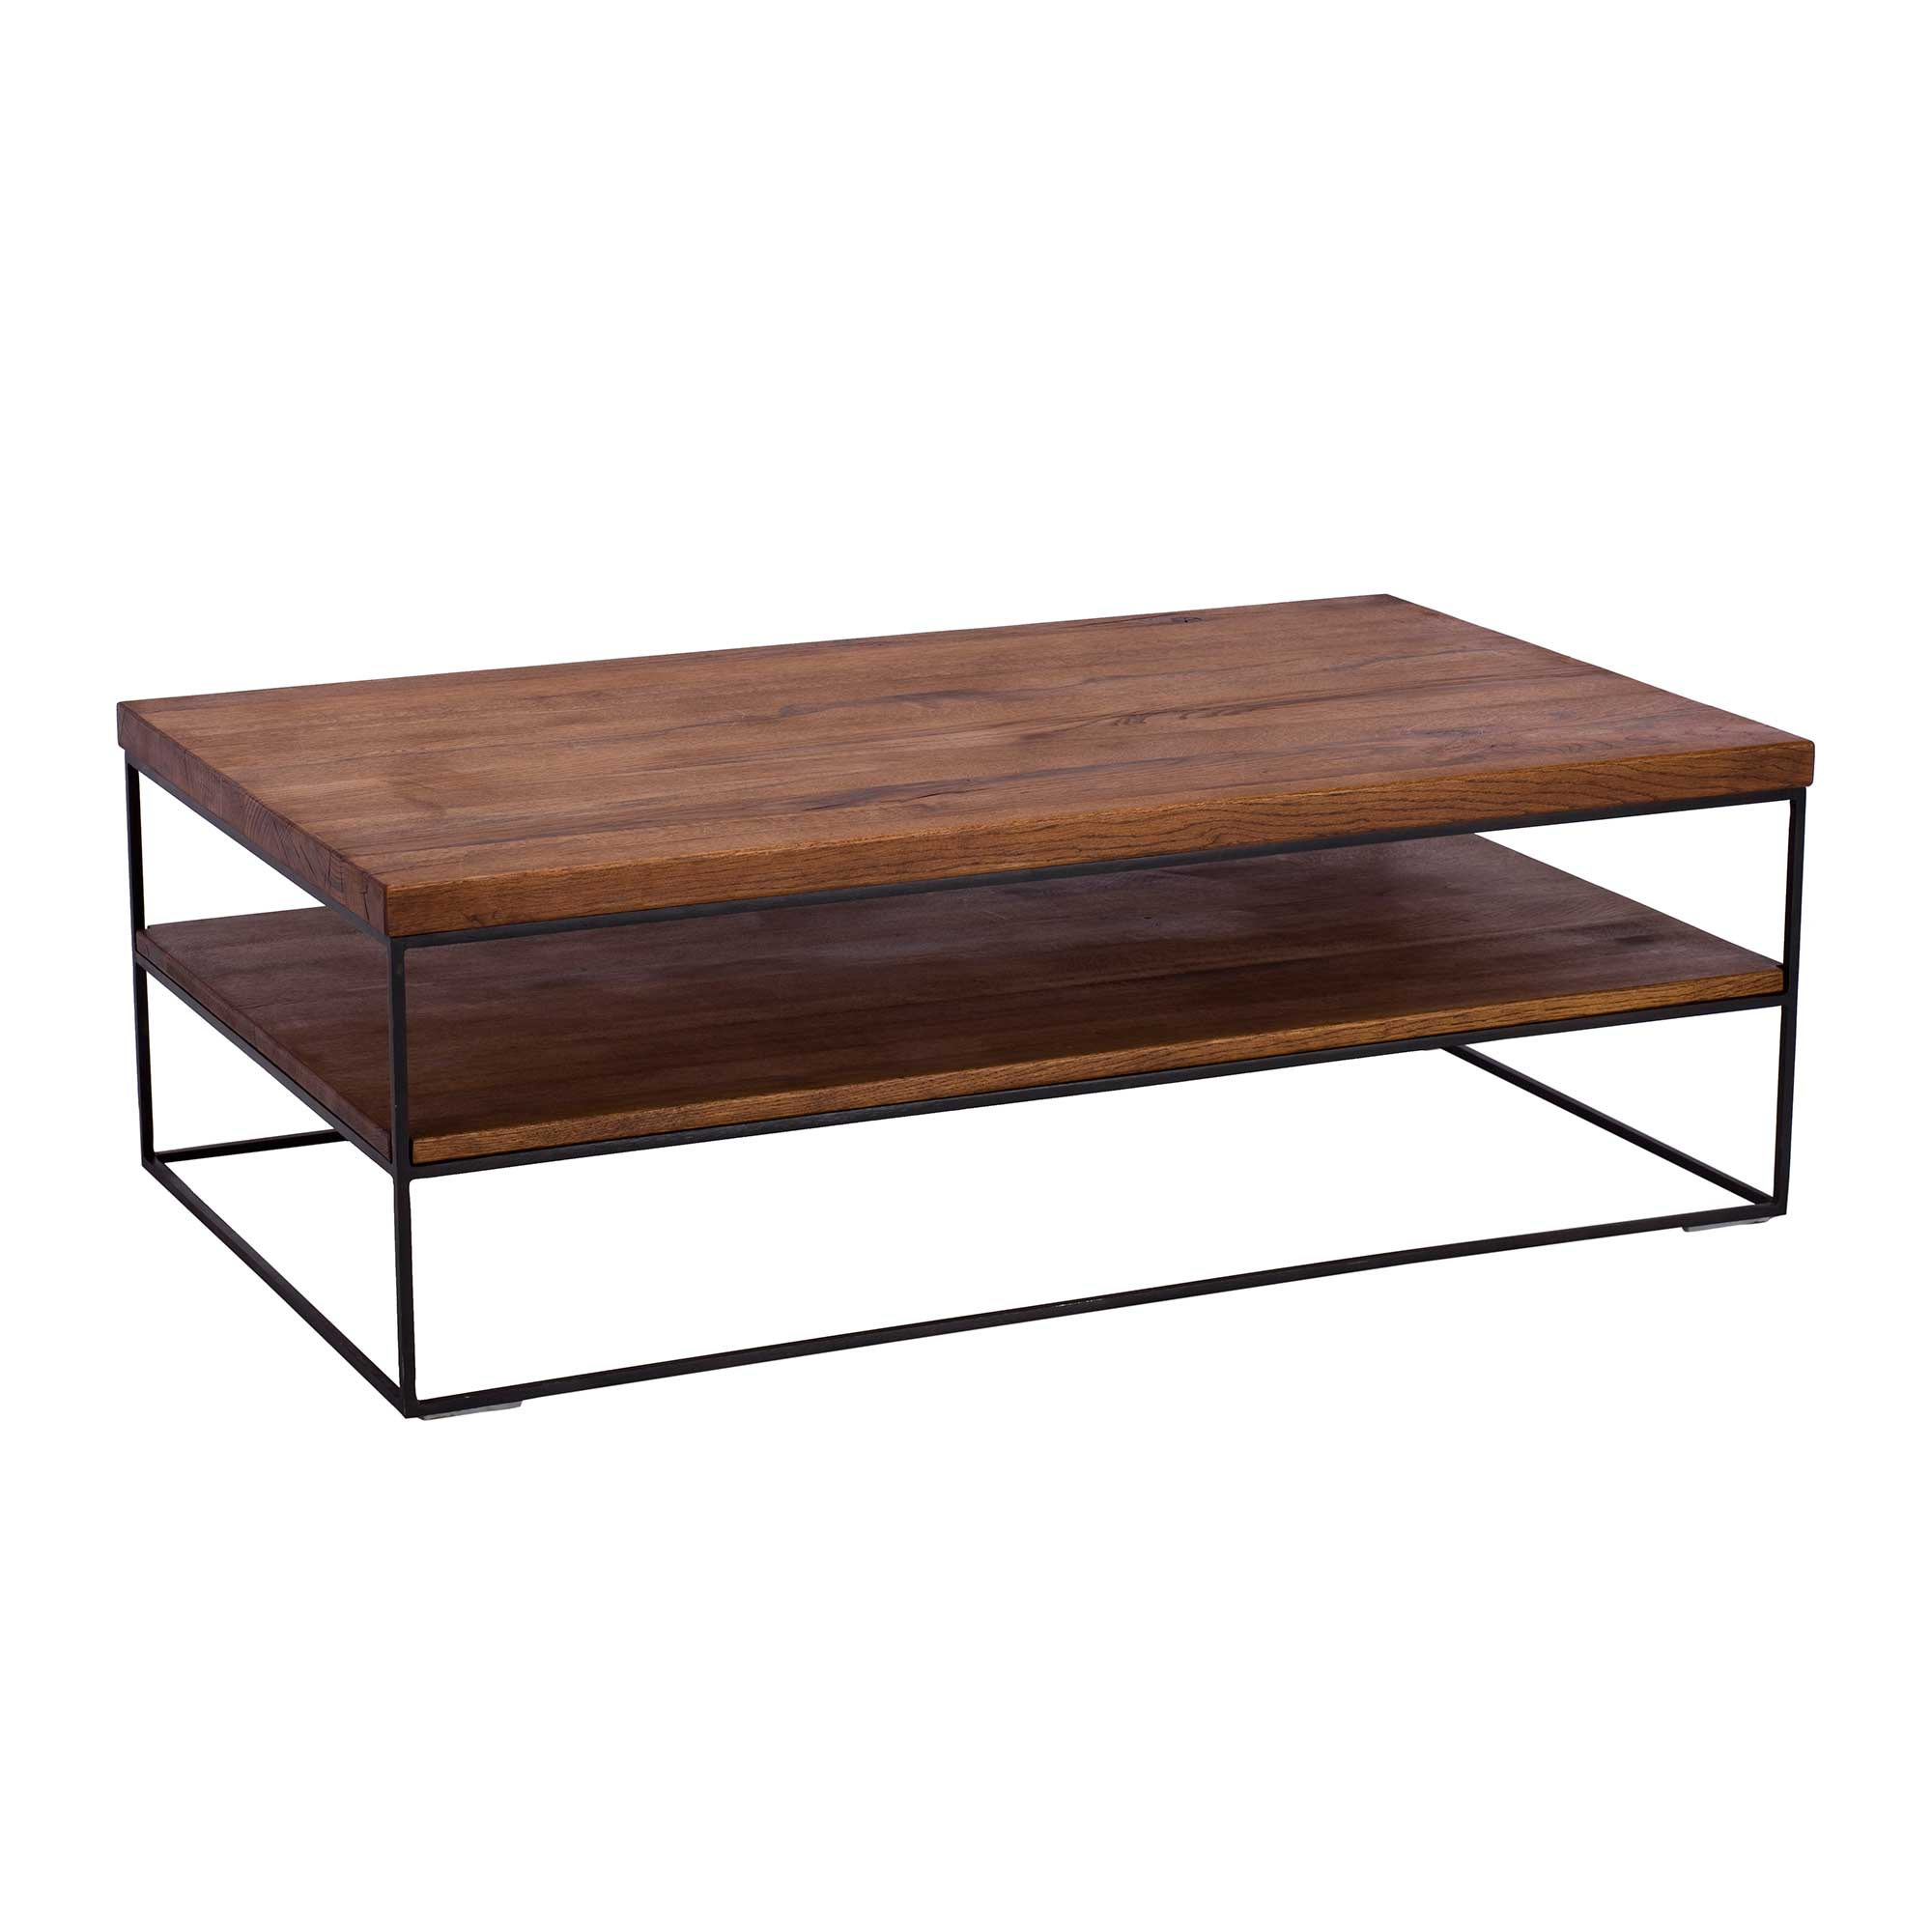 CORMAR OILED OAK COFFEE TABLE - L120cm x D70cm x H40cm ANGLE VIEW